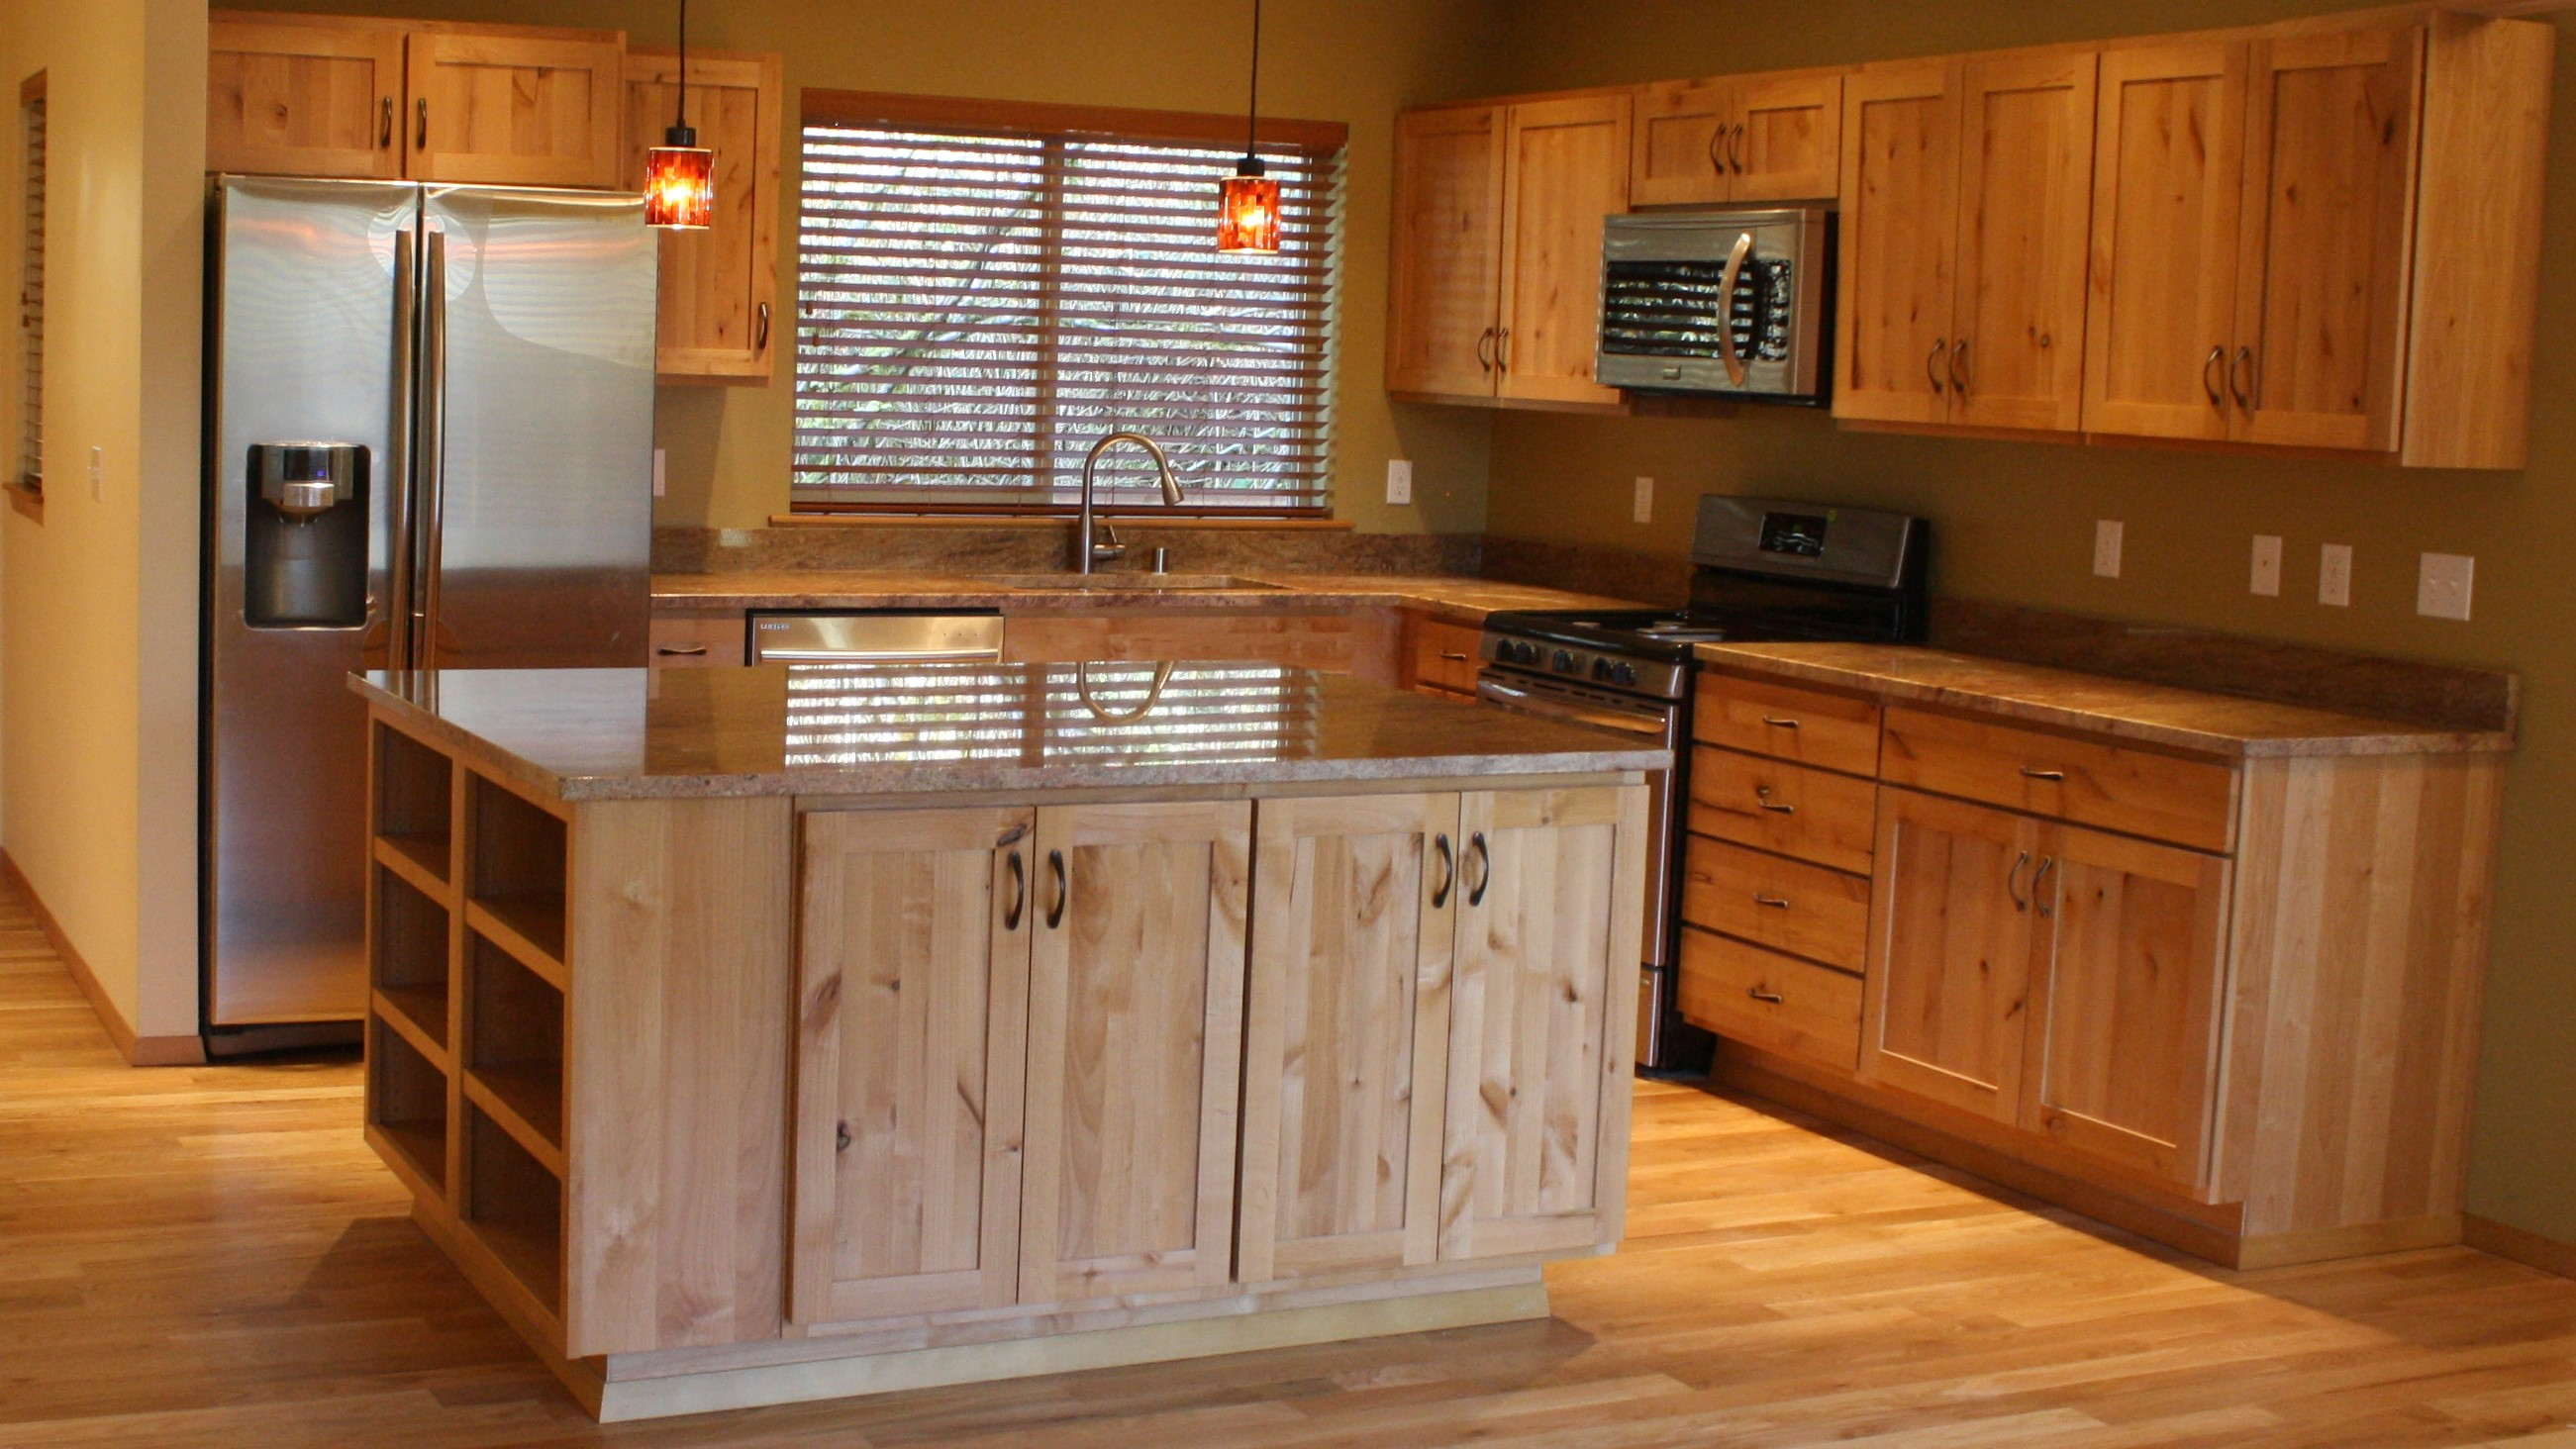 Kitchen Cabinets Particle Board Or Plywood Which Is The Better Choice